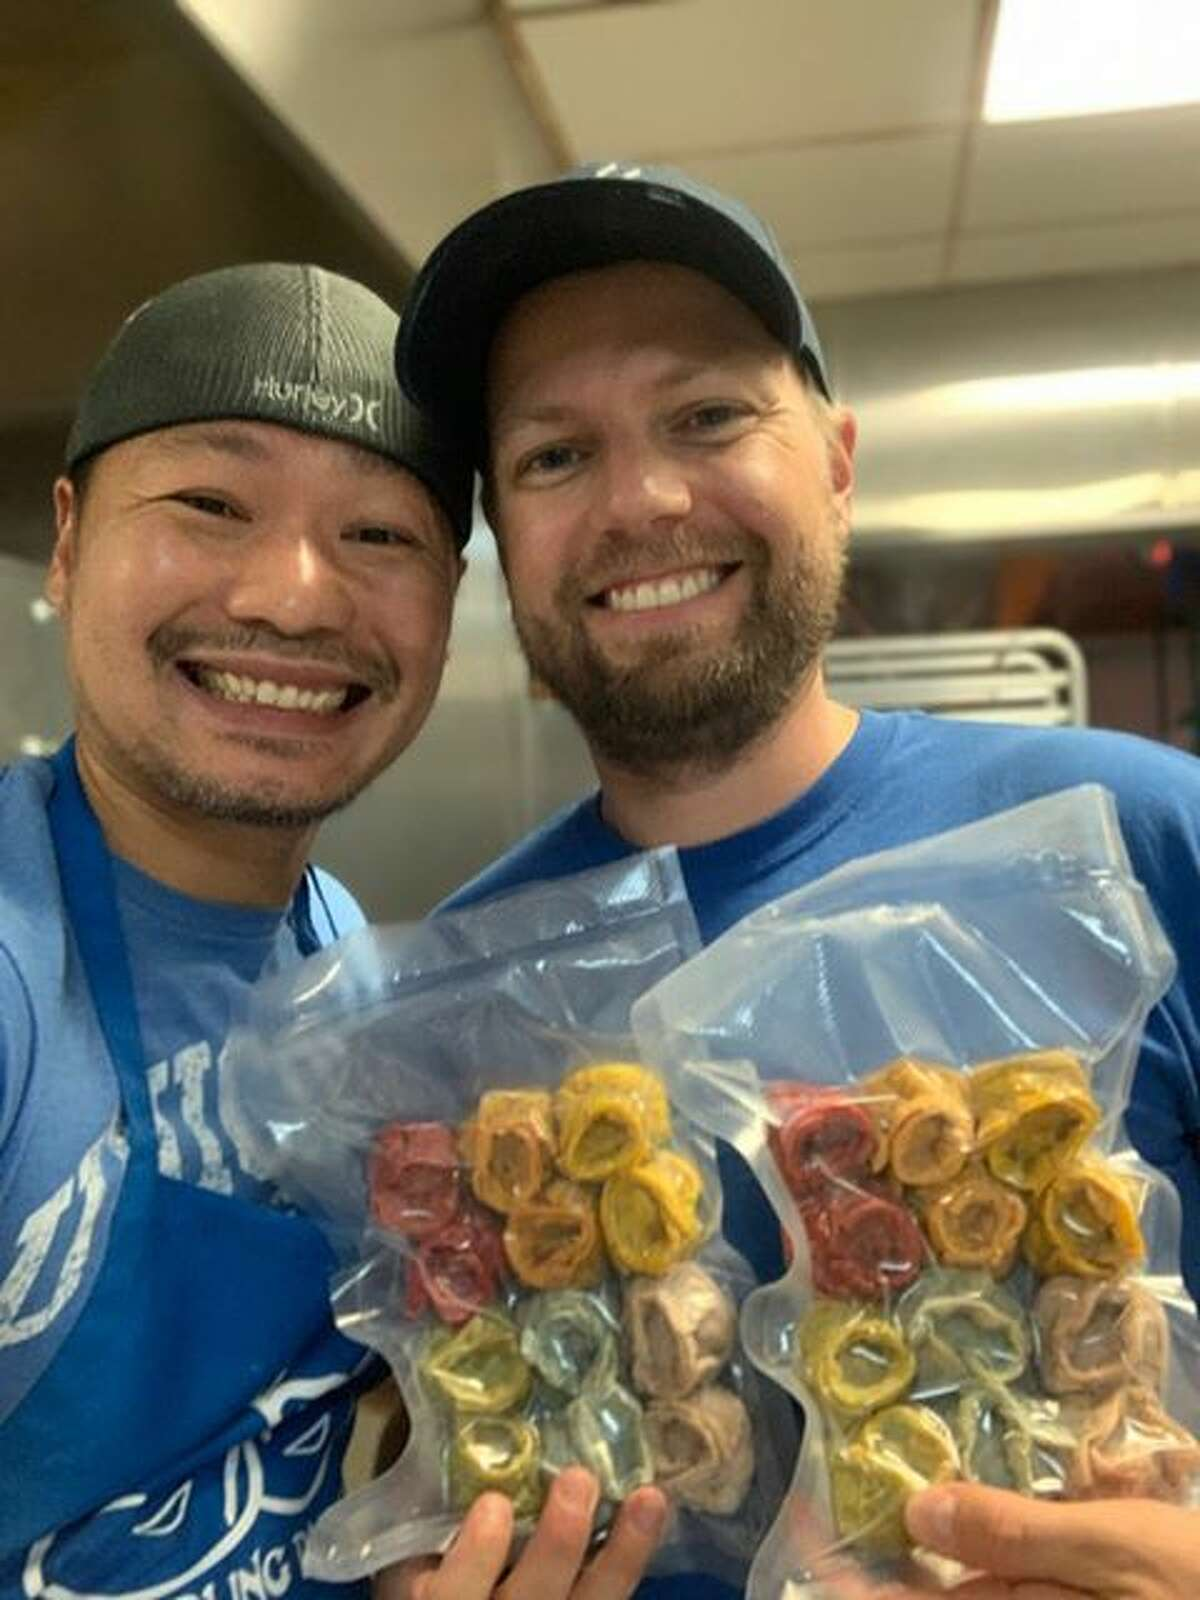 Married couple Chih Lin and Mike Dorsey turned their shared dumpling-making passion into a new EaDo business: Dumpling Dudes.